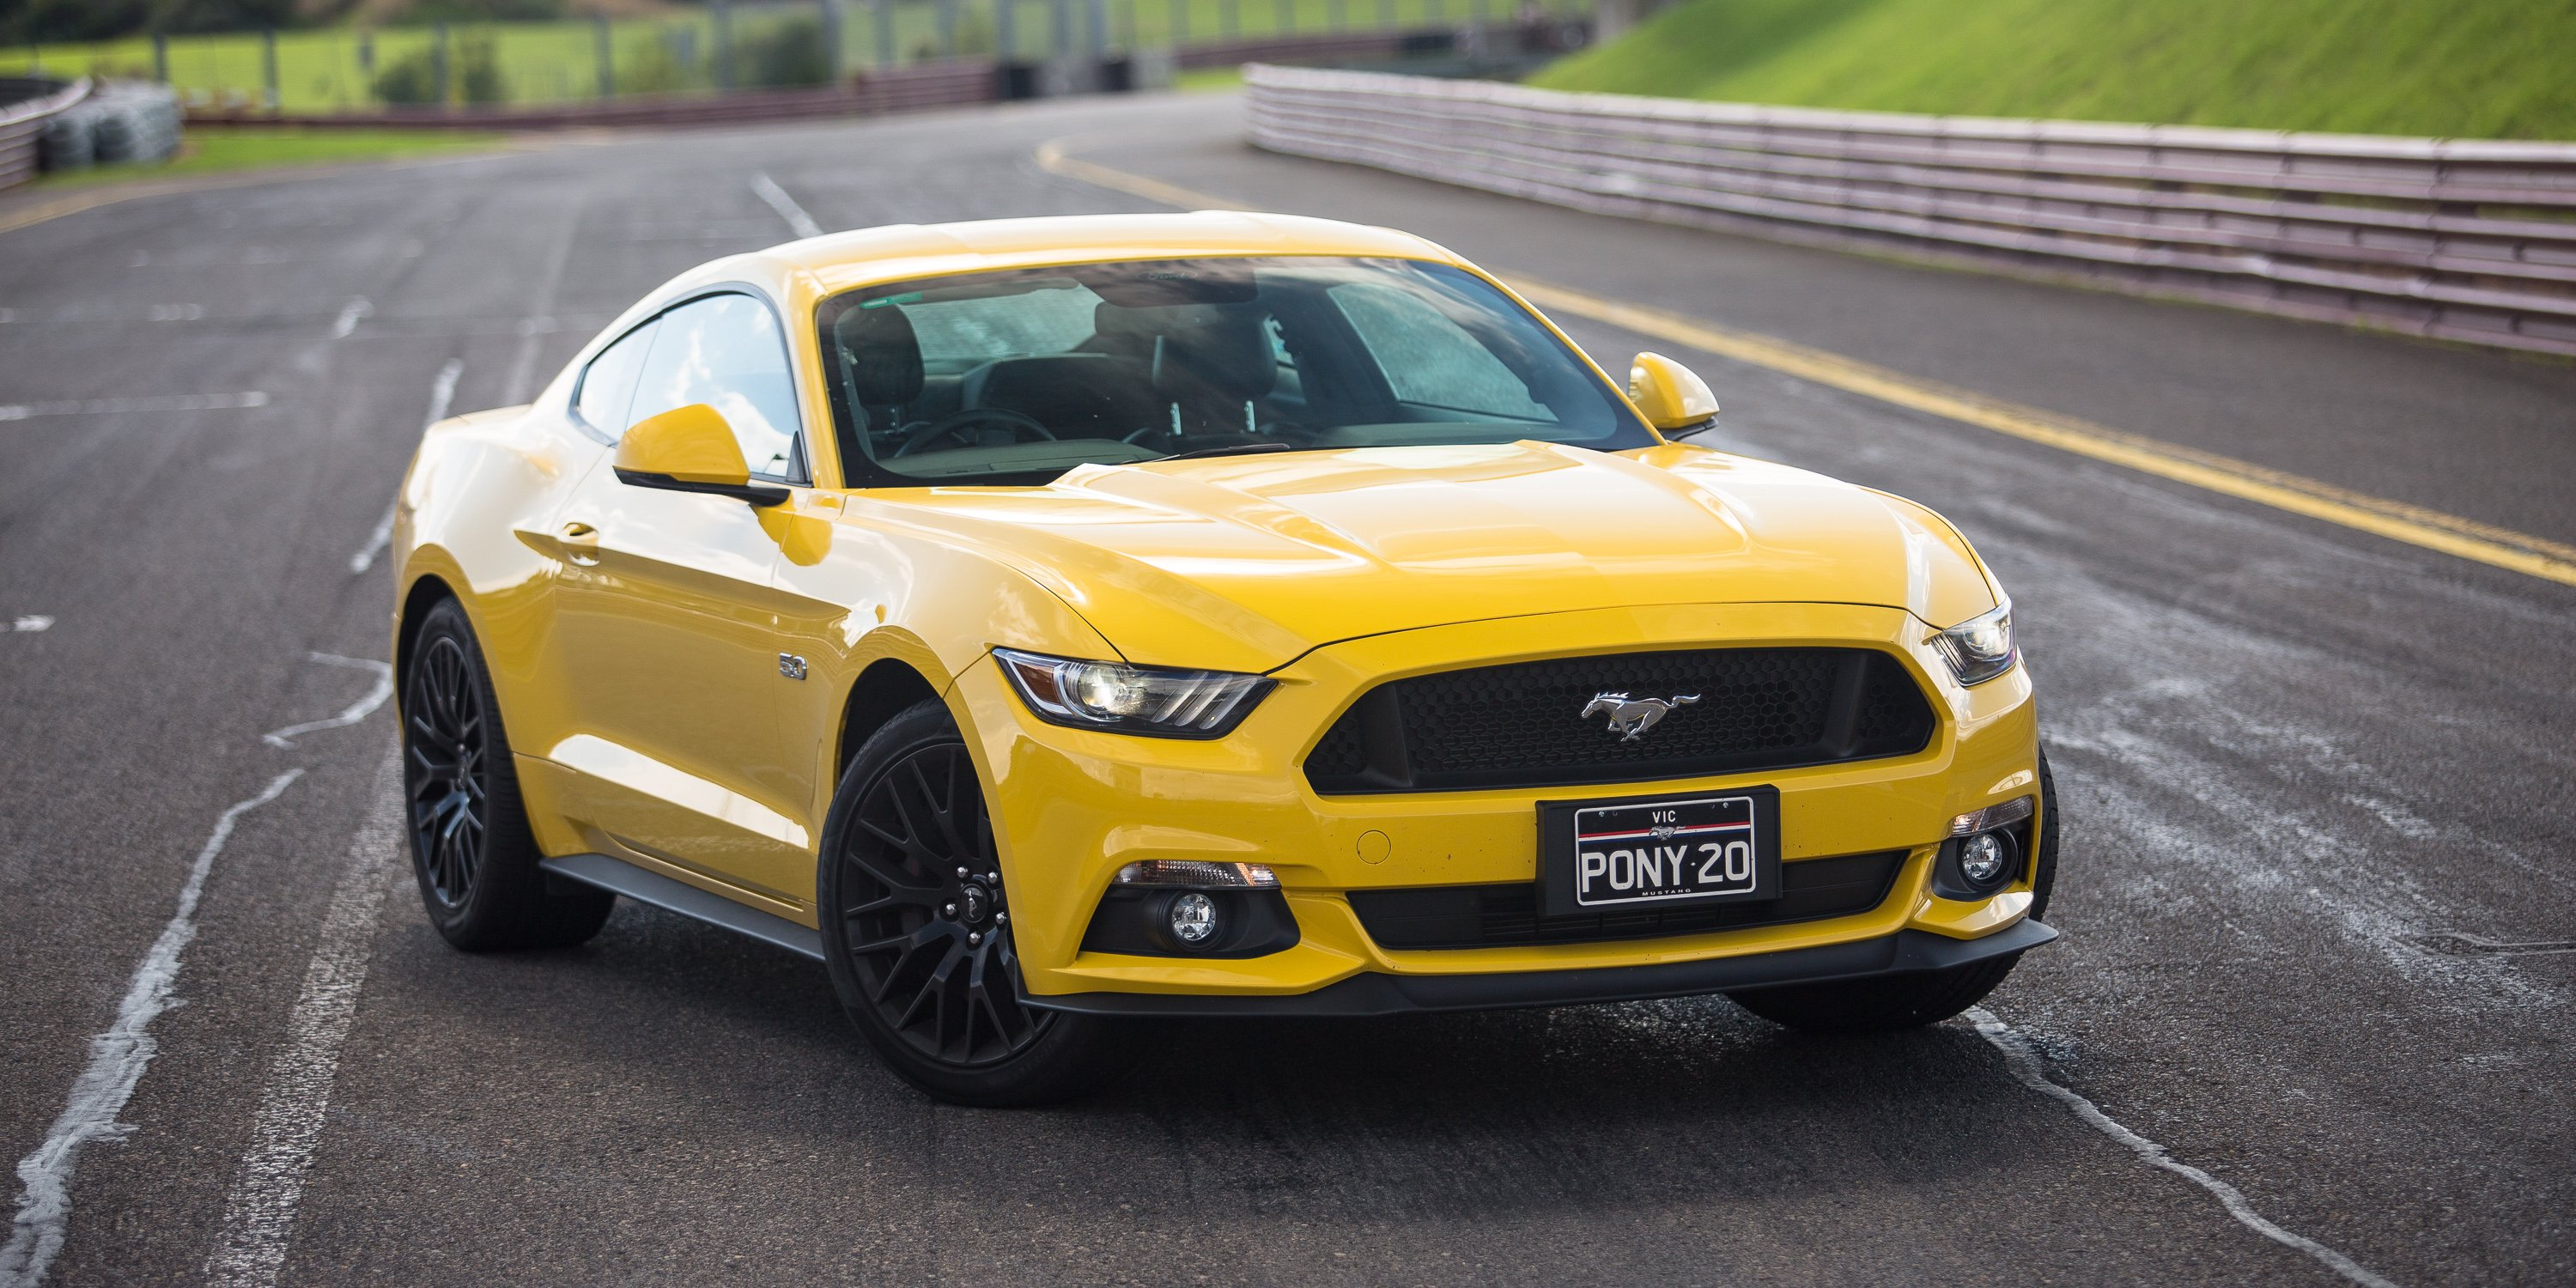 2017 ford mustang gt fastback review long term report four the track day photos 1 of 24. Black Bedroom Furniture Sets. Home Design Ideas